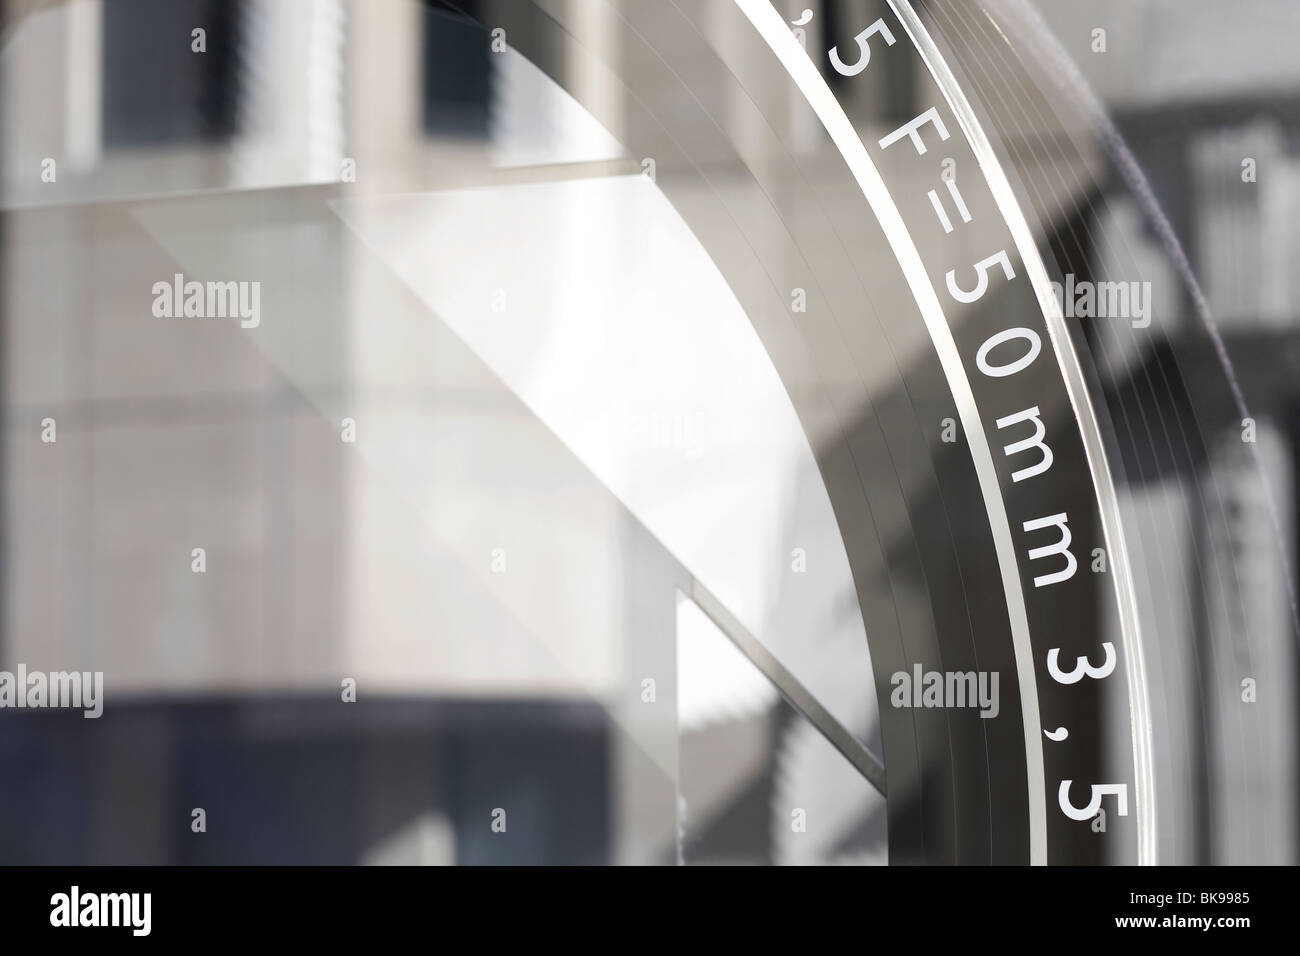 camera lens in stylised window display Stock Photo